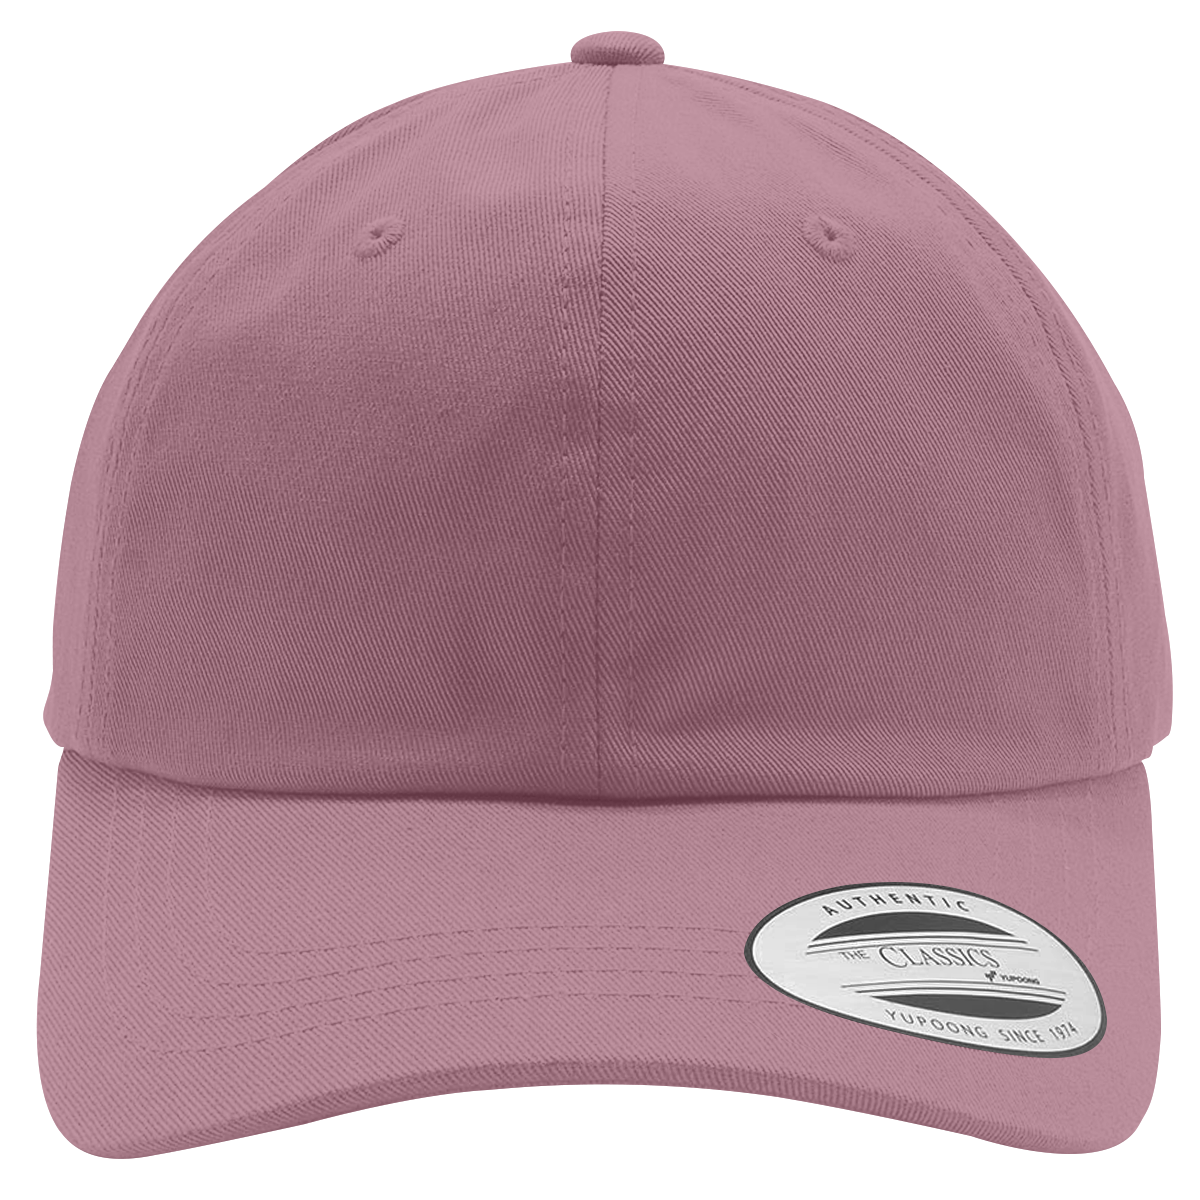 Custom Cotton Twill Hats | Hatsline - Embroidery front